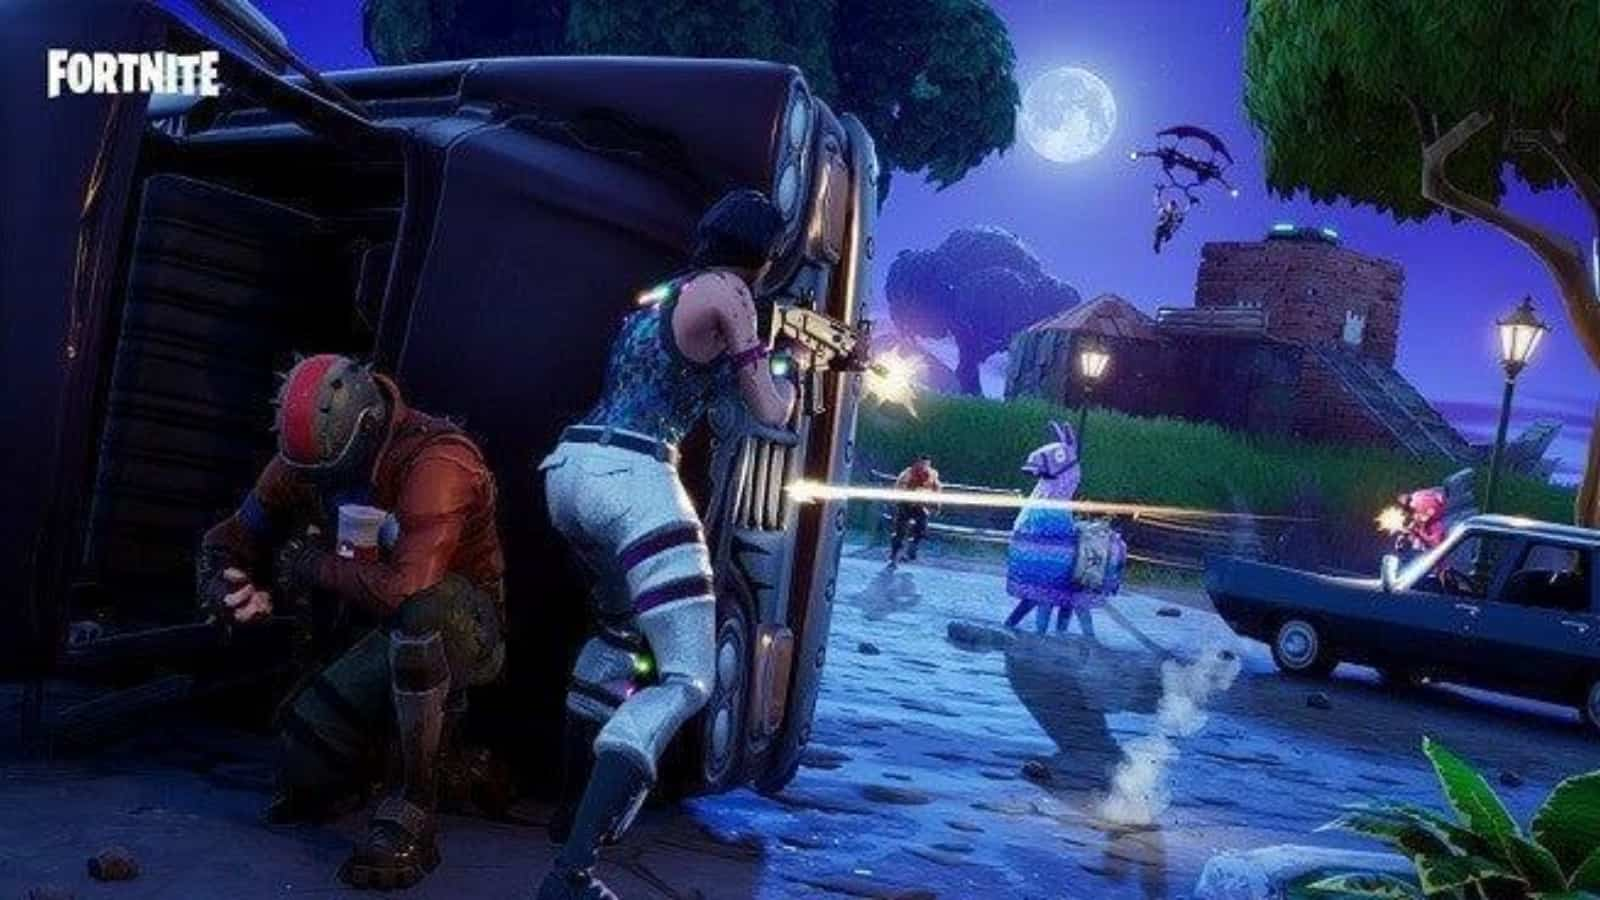 Fortnite Kill Confirmed Map Code and How to Play